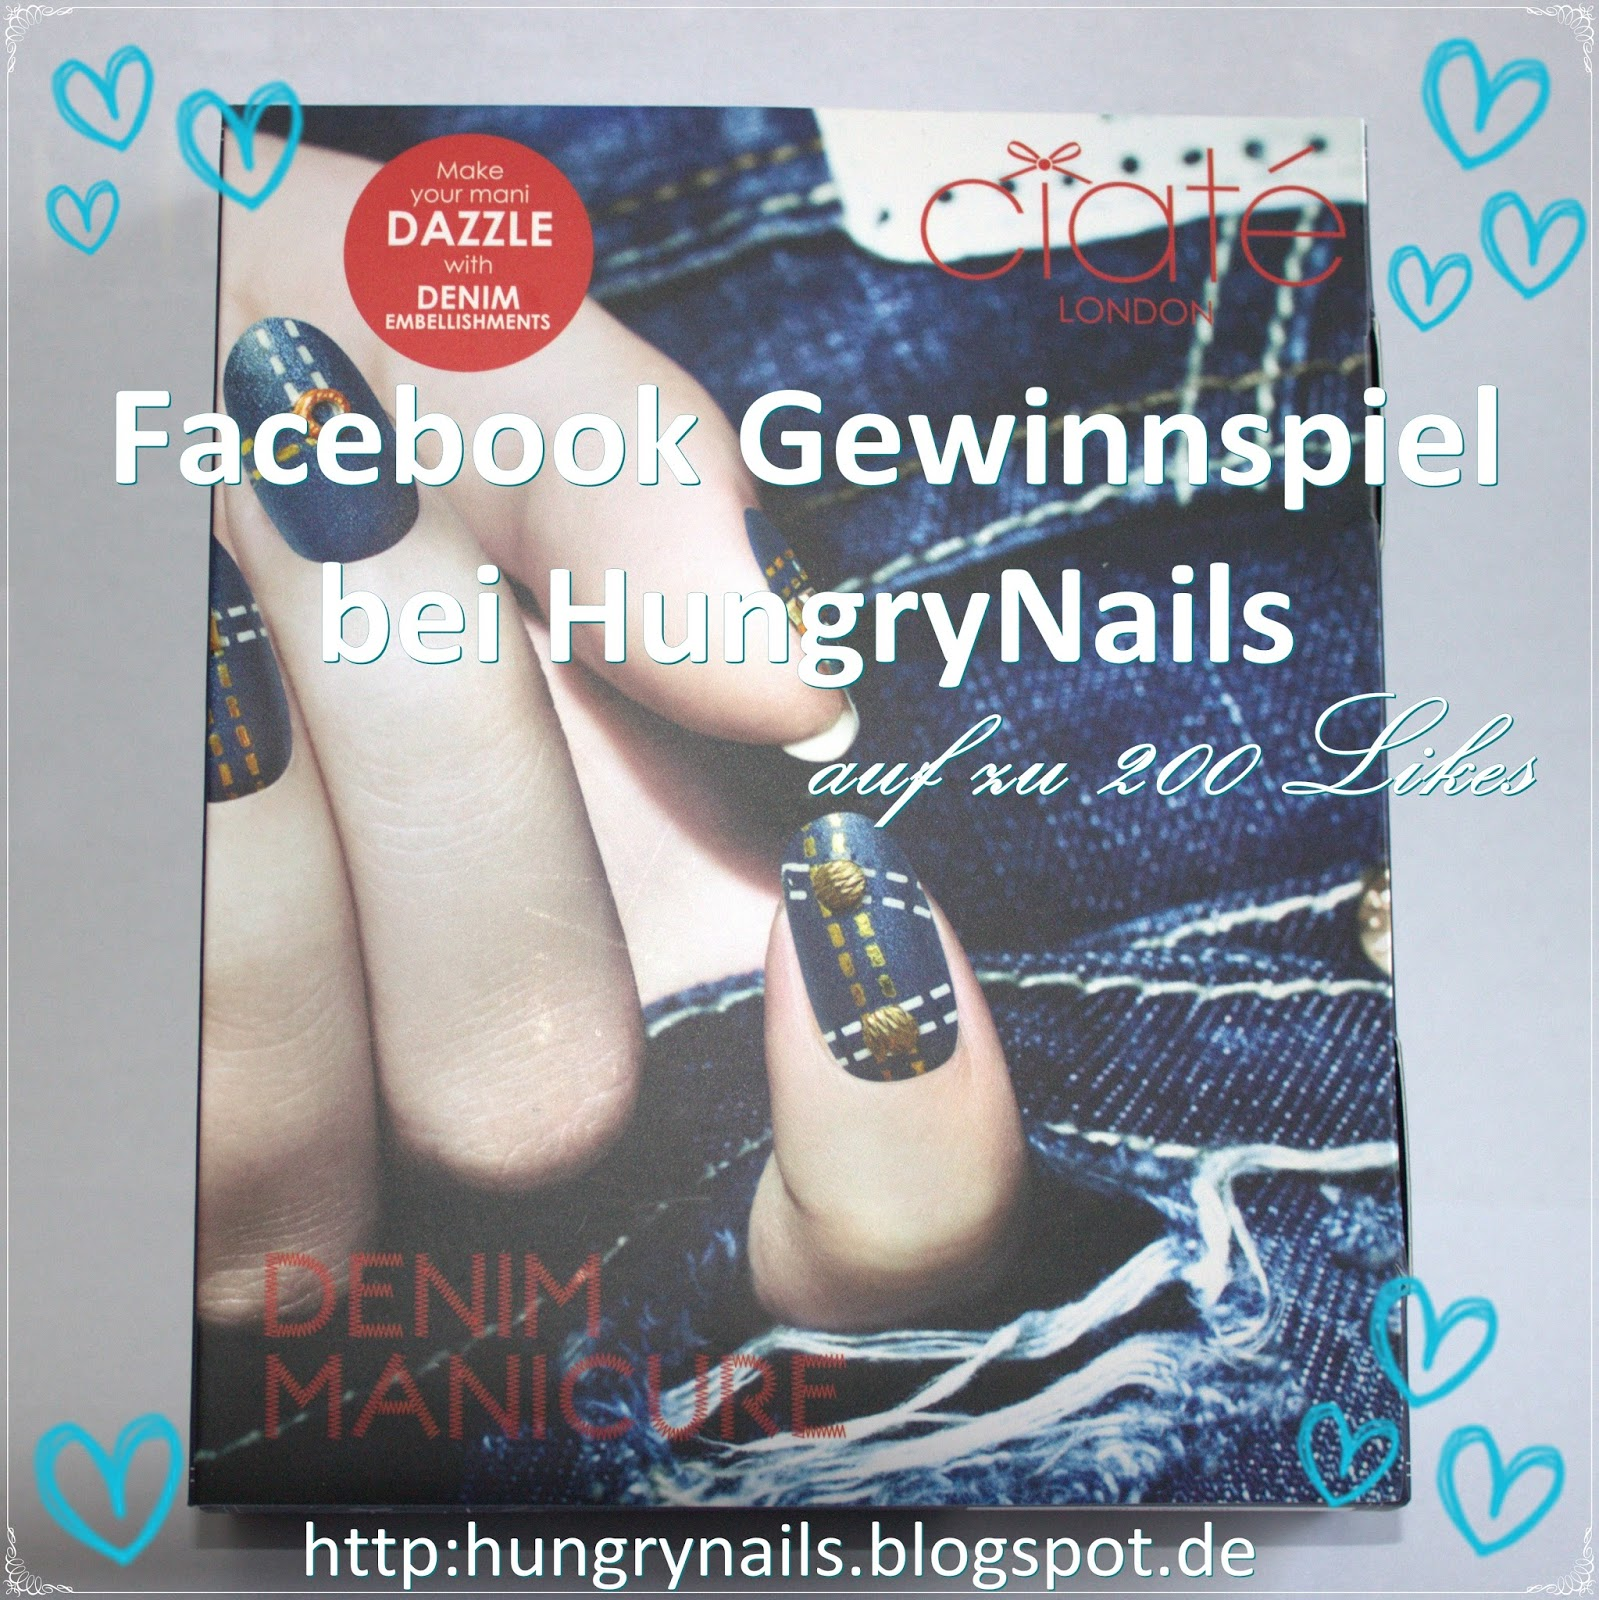 https://www.facebook.com/HungryNails/photos/a.139207319607837.1073741828.139170476278188/219735761554992/?type=1&stream_ref=10